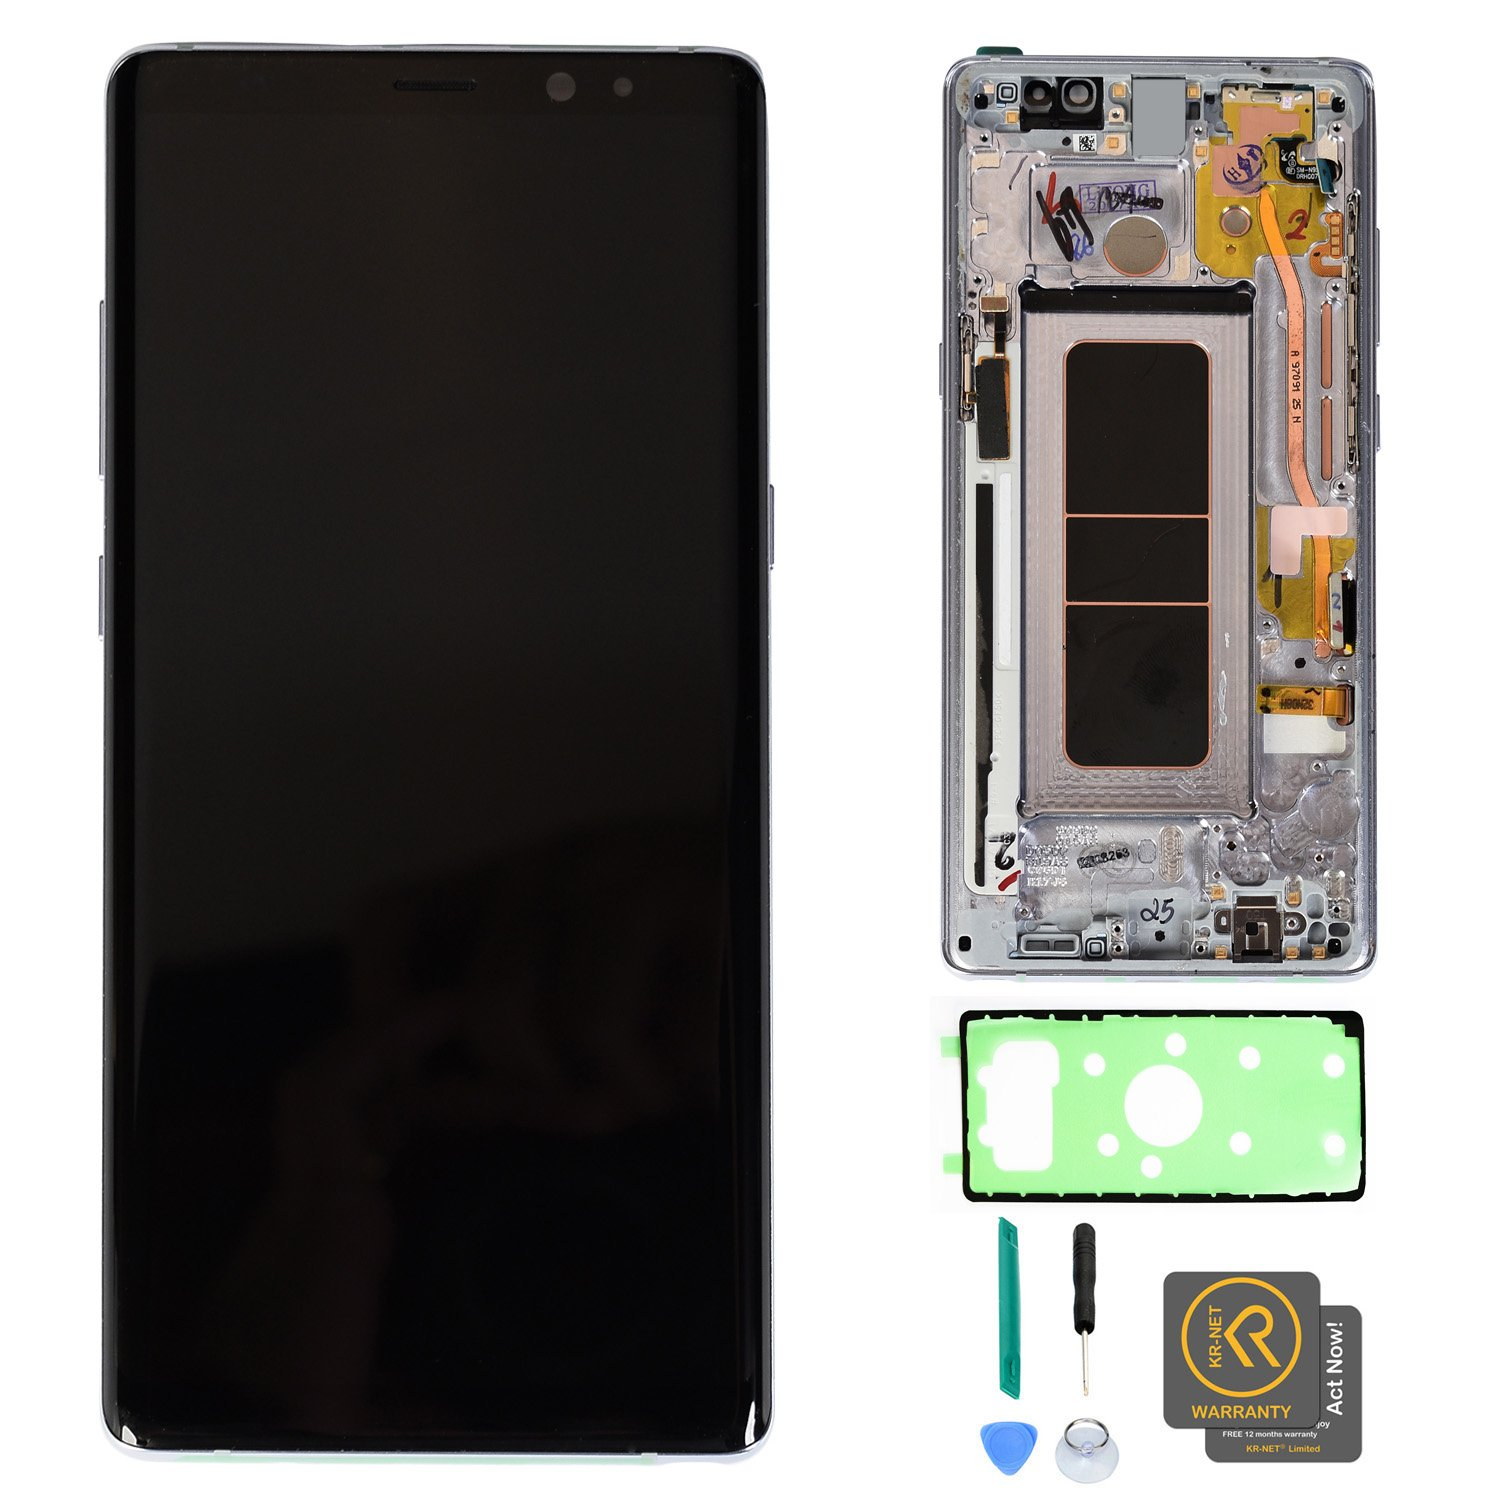 KR-NET [With Frame, Orchid Gray] AMOLED LCD Display Touch Screen Digitizer Replacement for Samsung Galaxy Note 8 N950U N950F N950W, with Tools and Adhesive